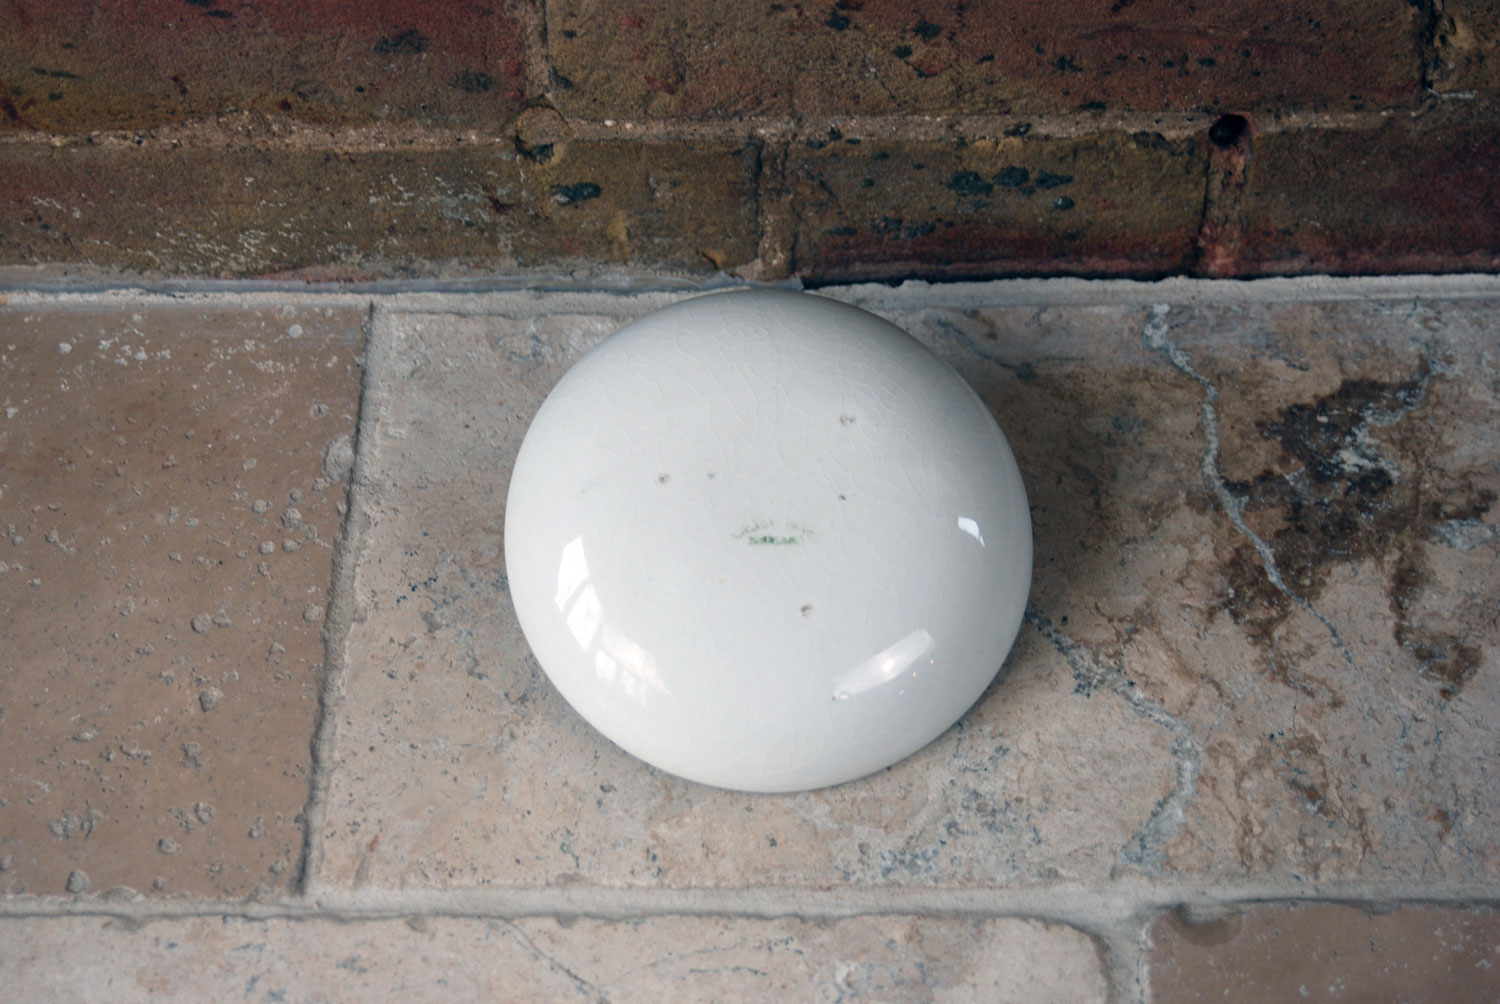 antique early 20th century maling cetem ware ironstone plain whiteware cabbage press collectable kitchenalia